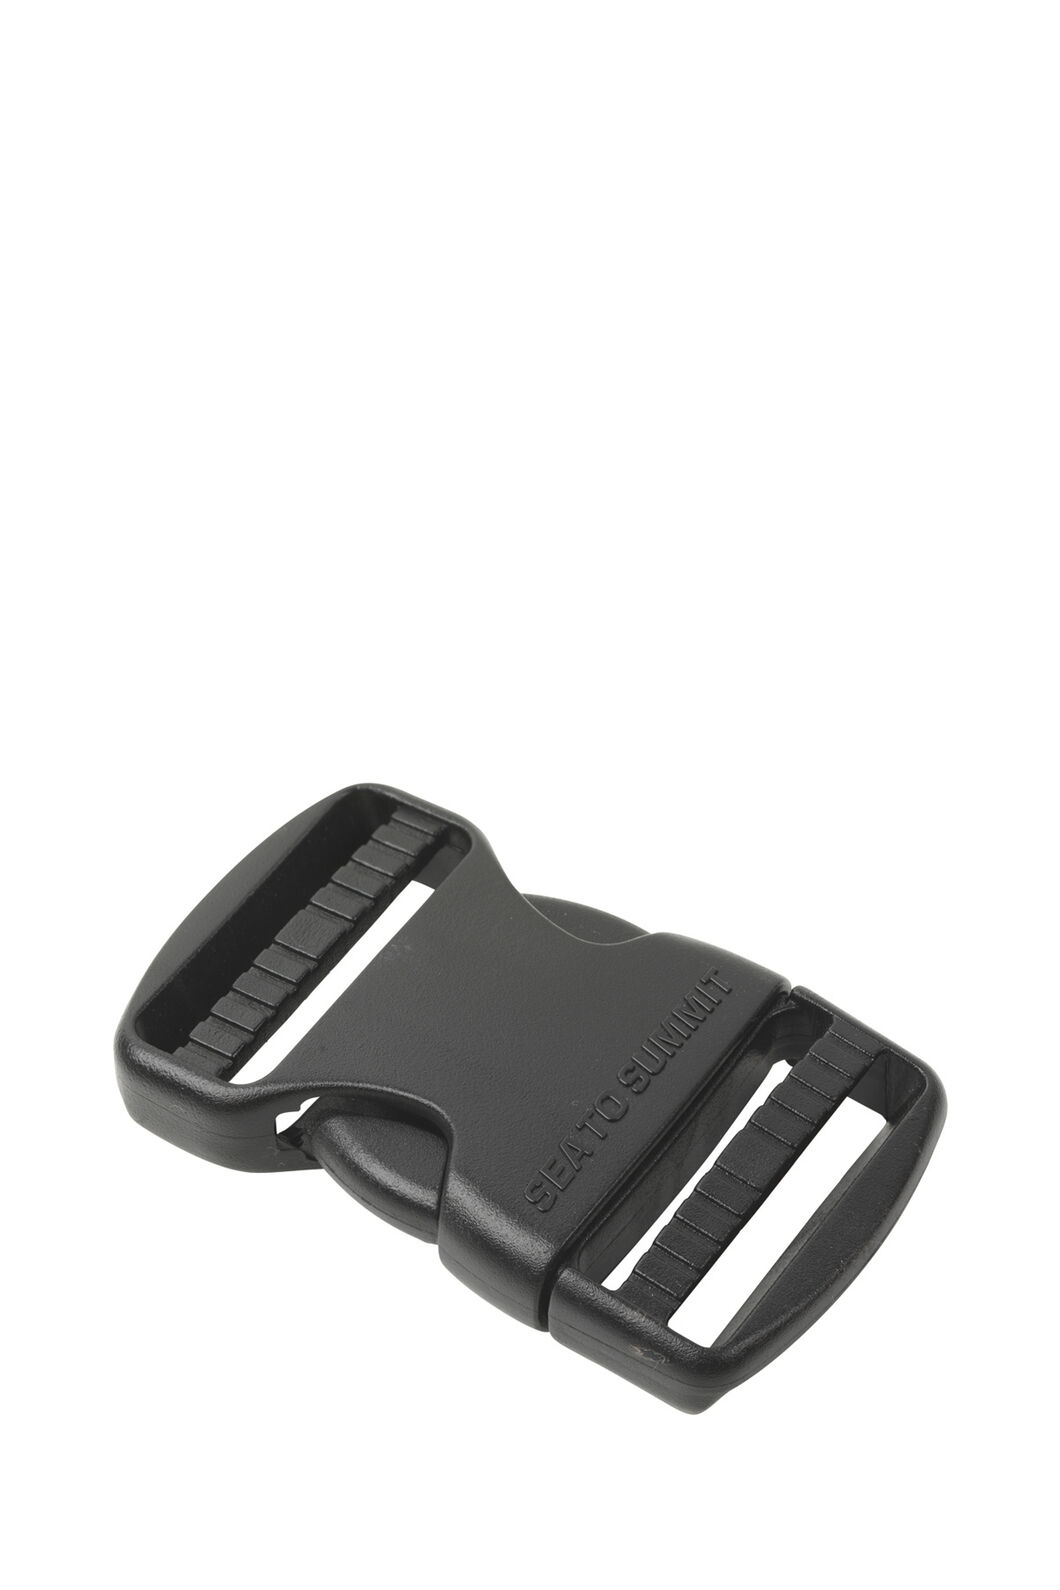 Sea to Summit Field Repair Buckle 38mm Side Release, None, hi-res